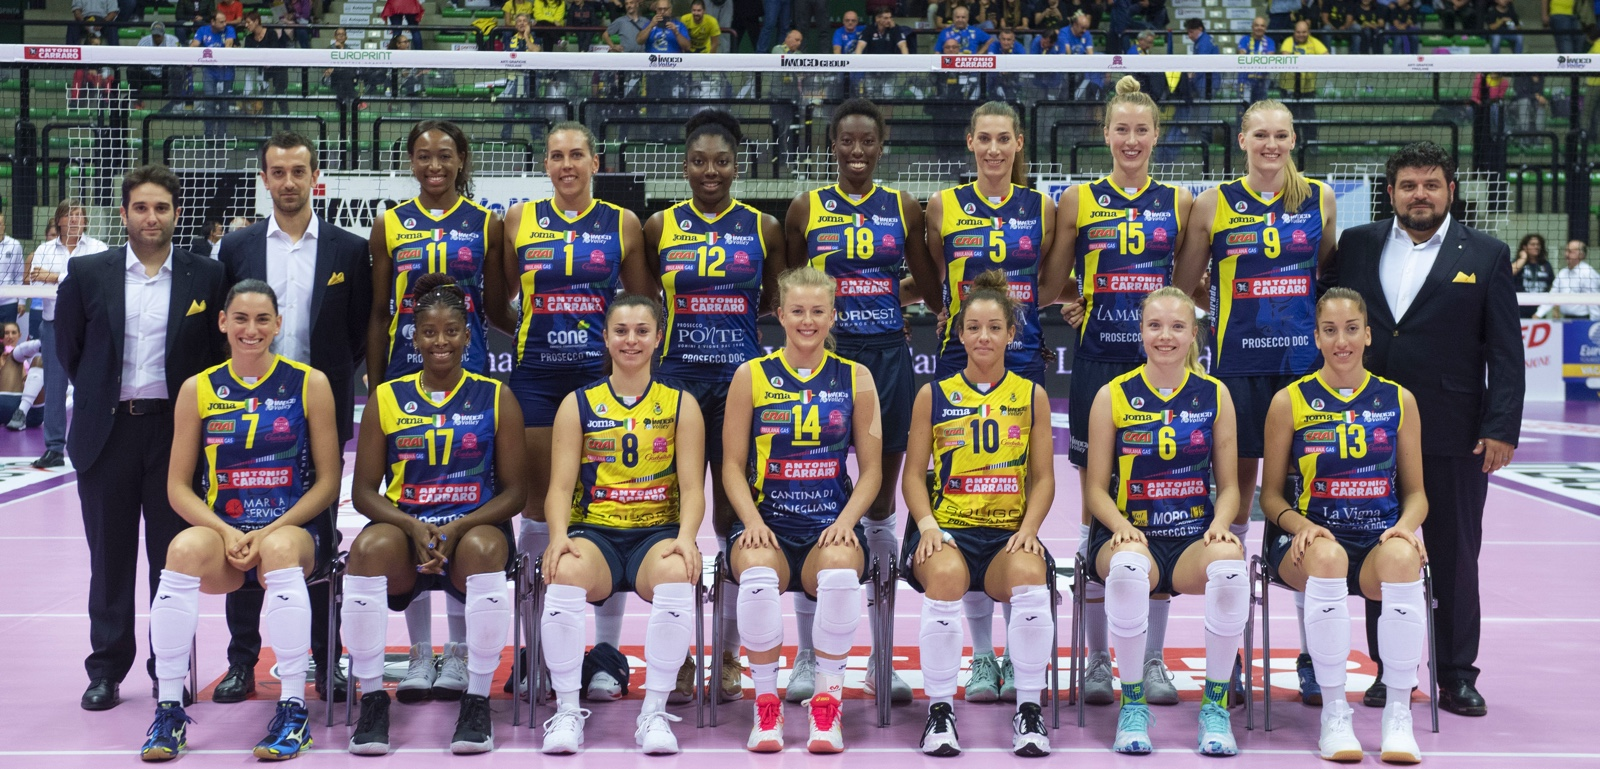 Roster Imoco Volley 2019-20